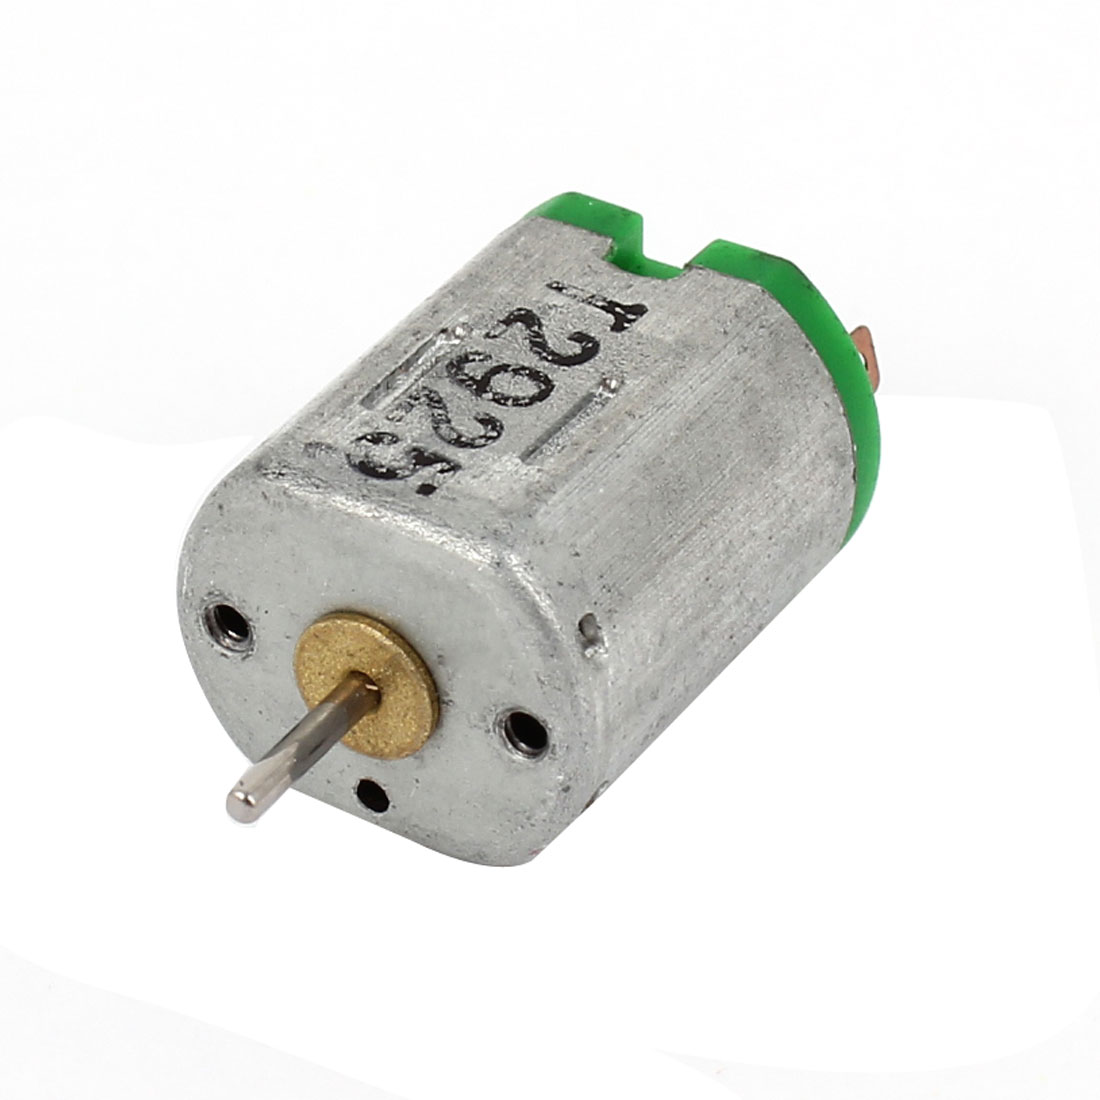 DC 1.5-6V 26500RPM 2 Terminal Motor N20 for RC Toy Model Airplane Smart Cars